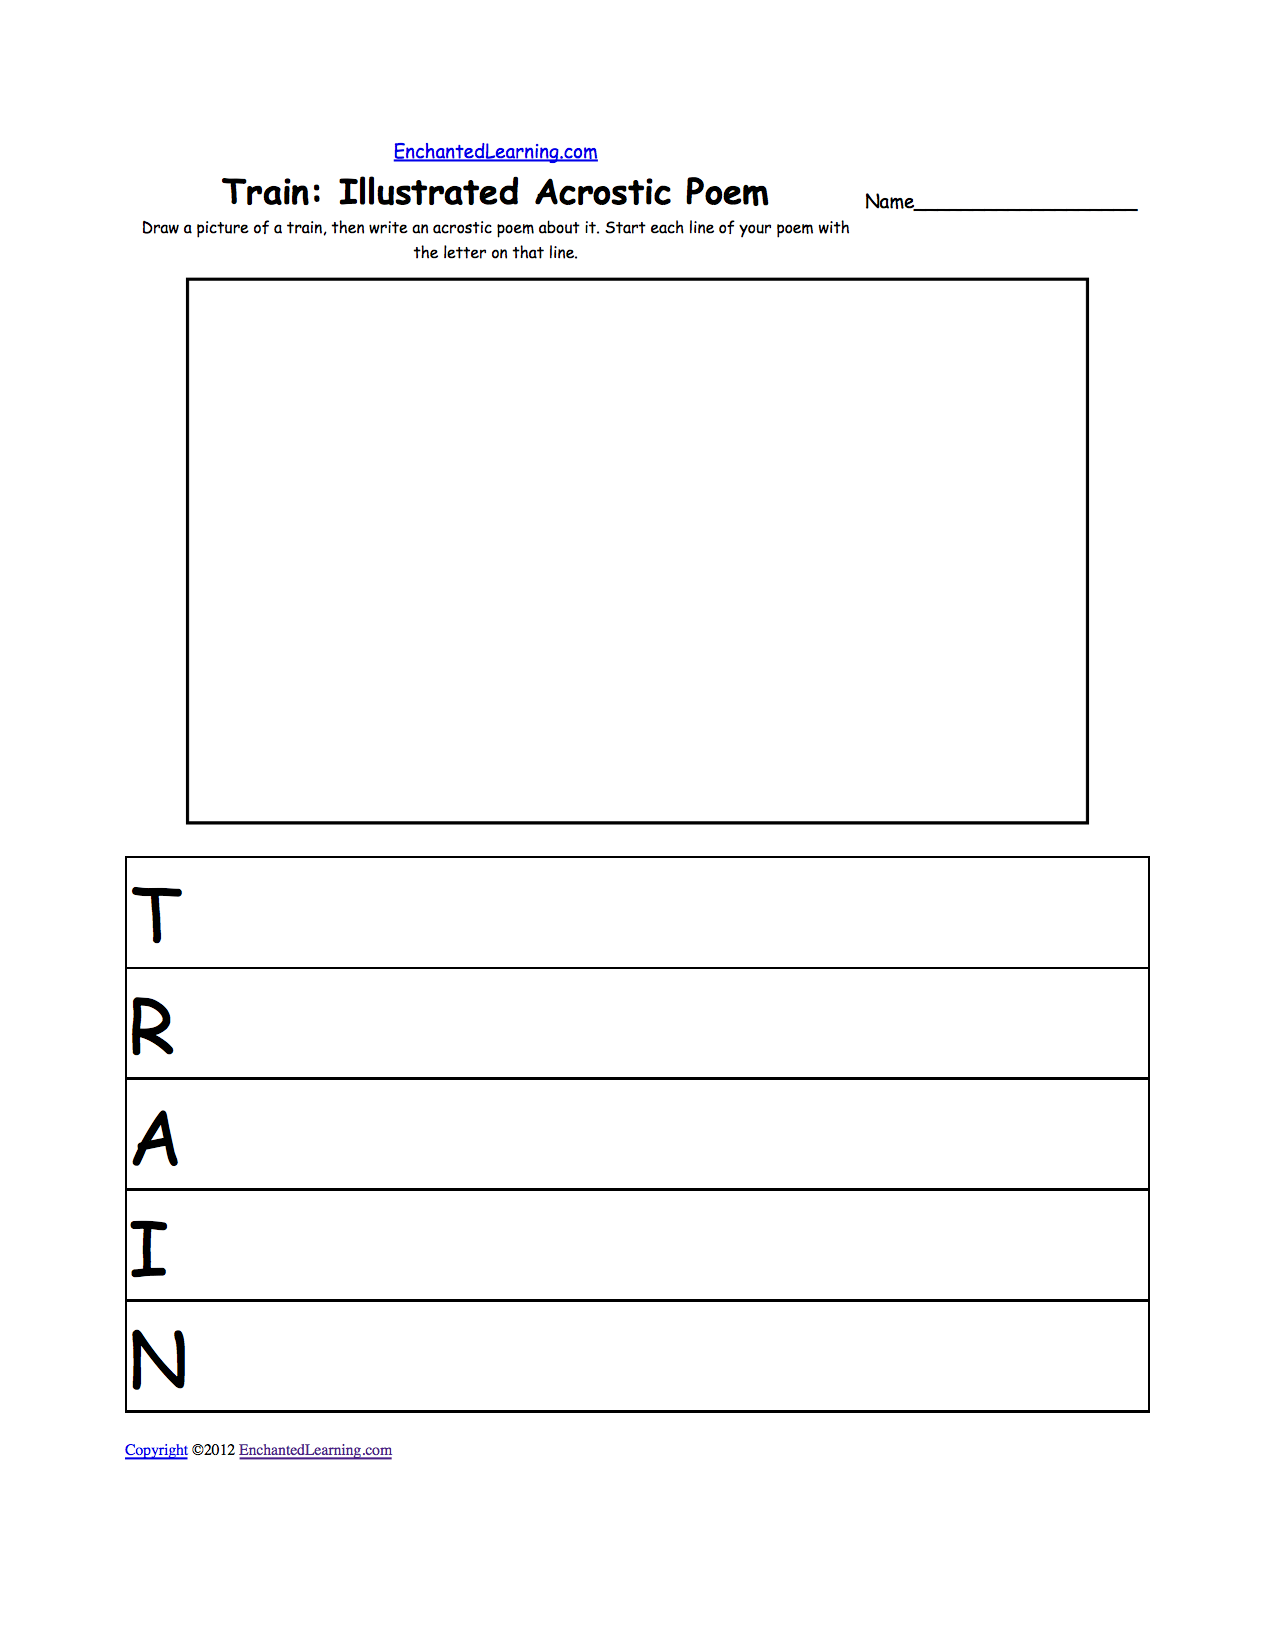 Train boxcar coloring pages - Train Boxcar Coloring Pages 48